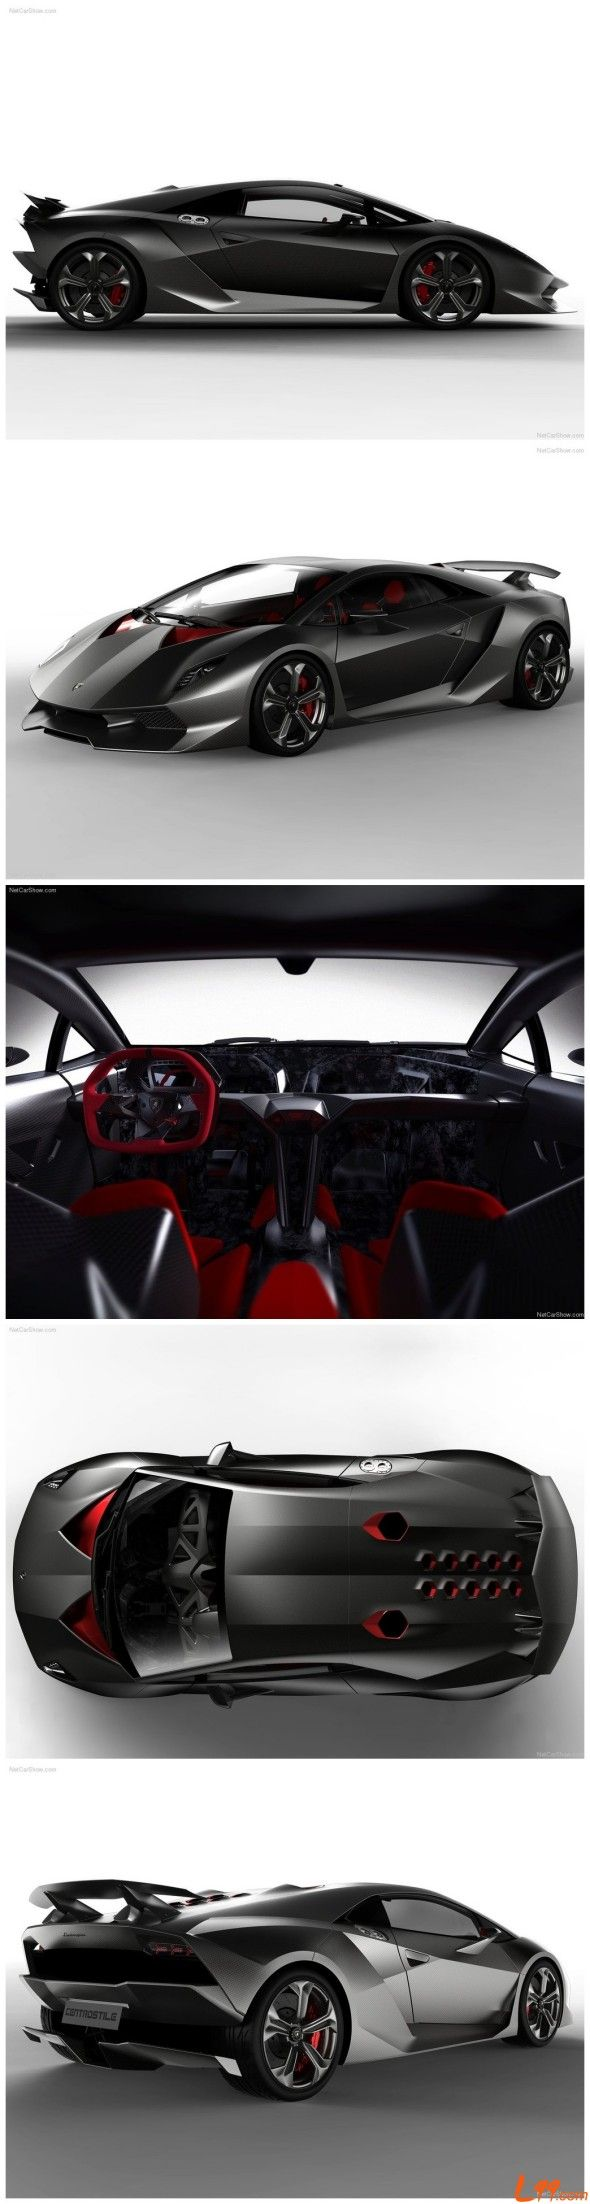 Lamborghini Sesto Elemento - It's name is a reference to the atomic number of carbon, in recognition of the car's extensive use of carbon fibre. Absolutely gorgeous and amazing! 0-60 in 2.5 secs!!!!!!